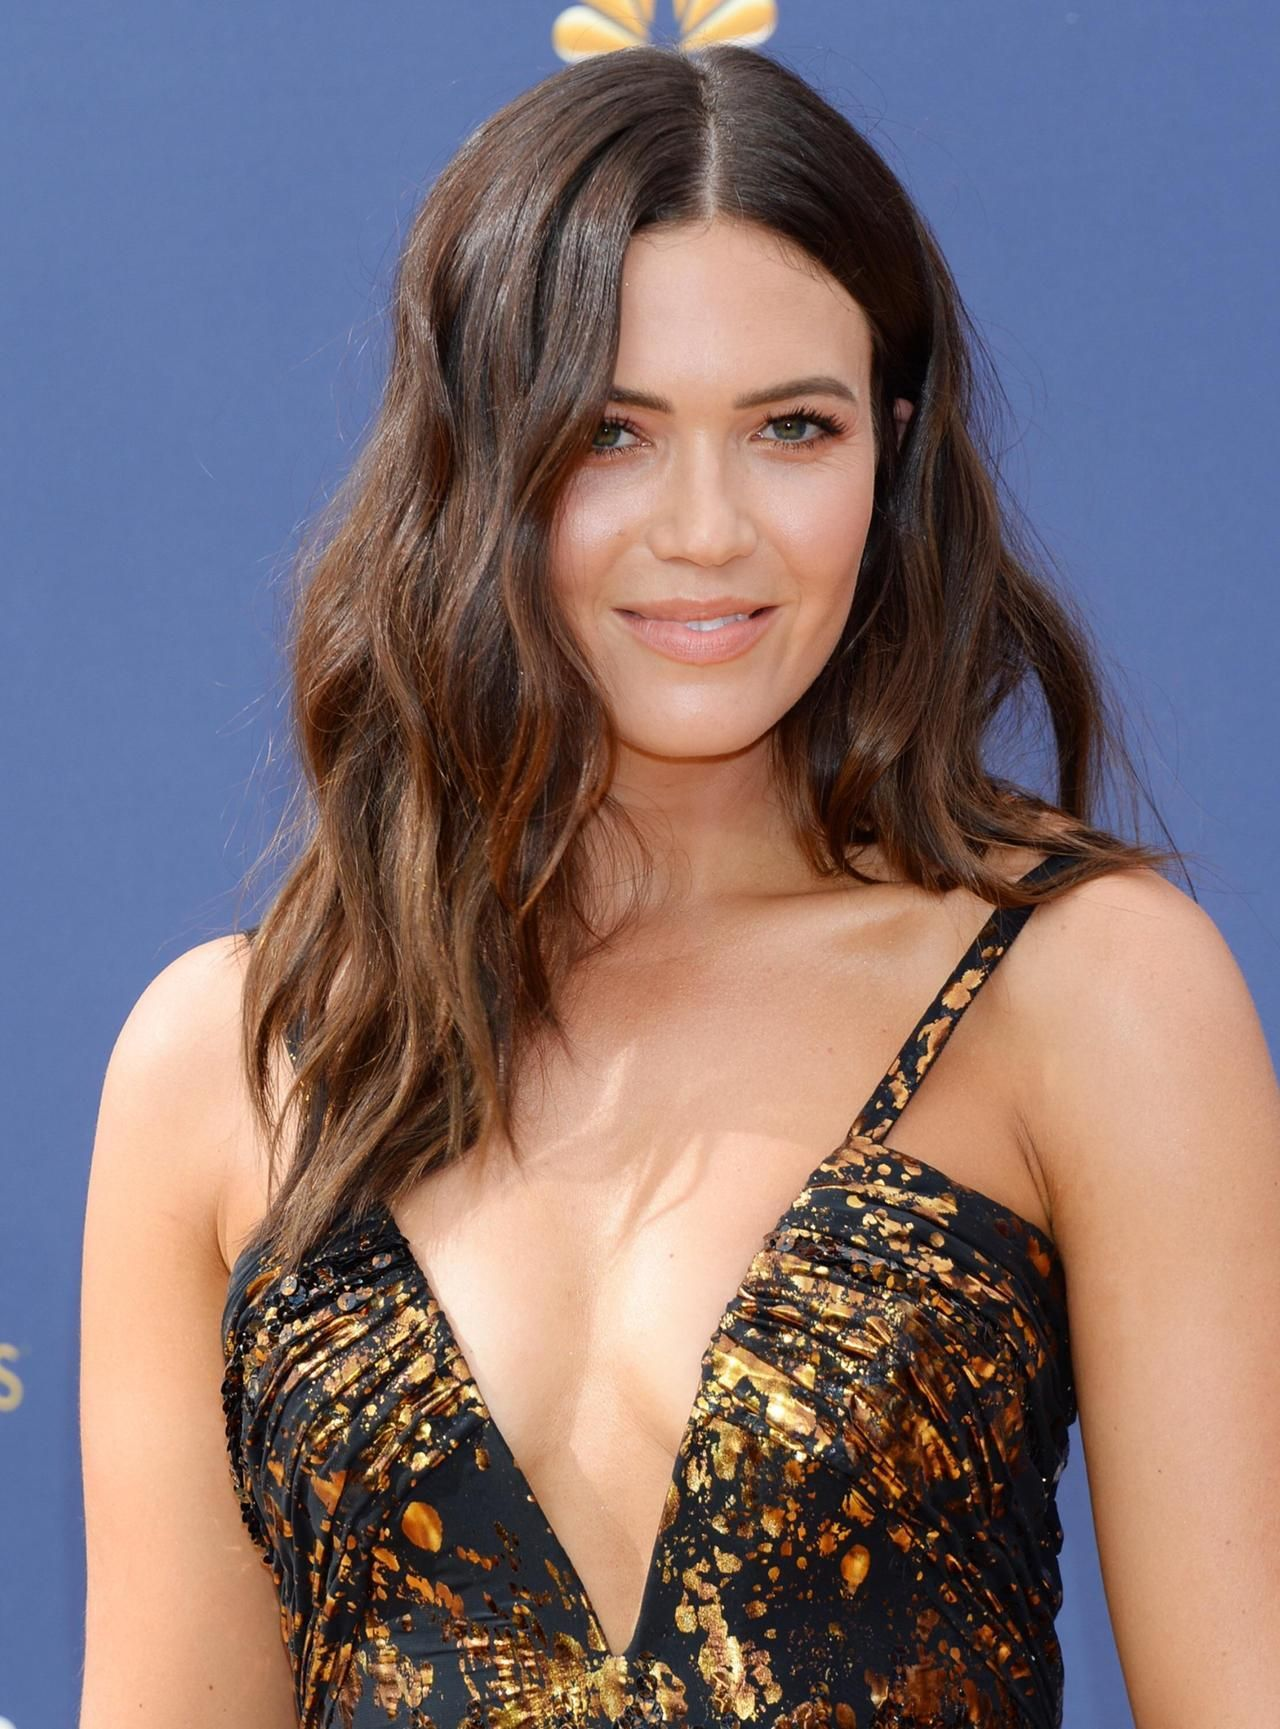 Cleavage Mandy Moore nude photos 2019